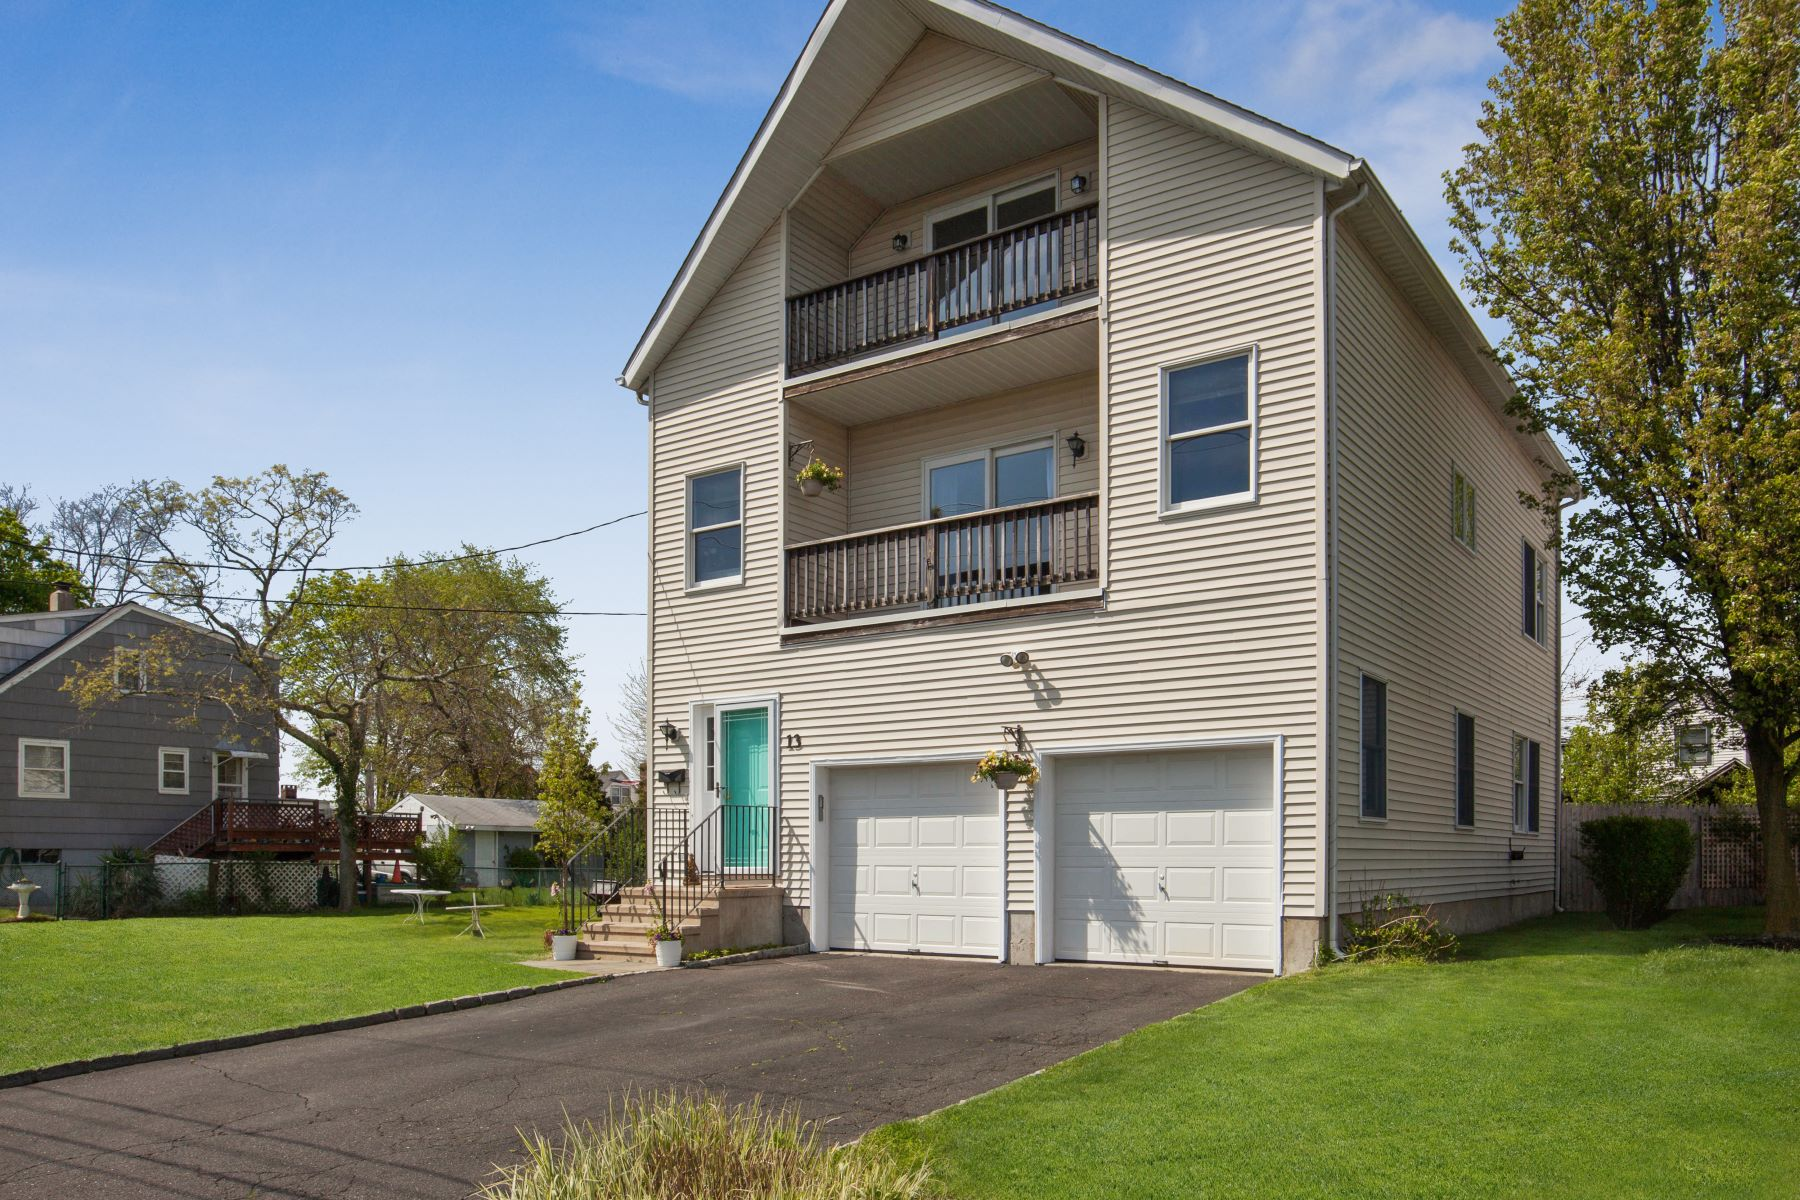 Property のために 売買 アット Updated Home with a Beachy Feel! 13 Yost Street, Norwalk, コネチカット 06854 アメリカ